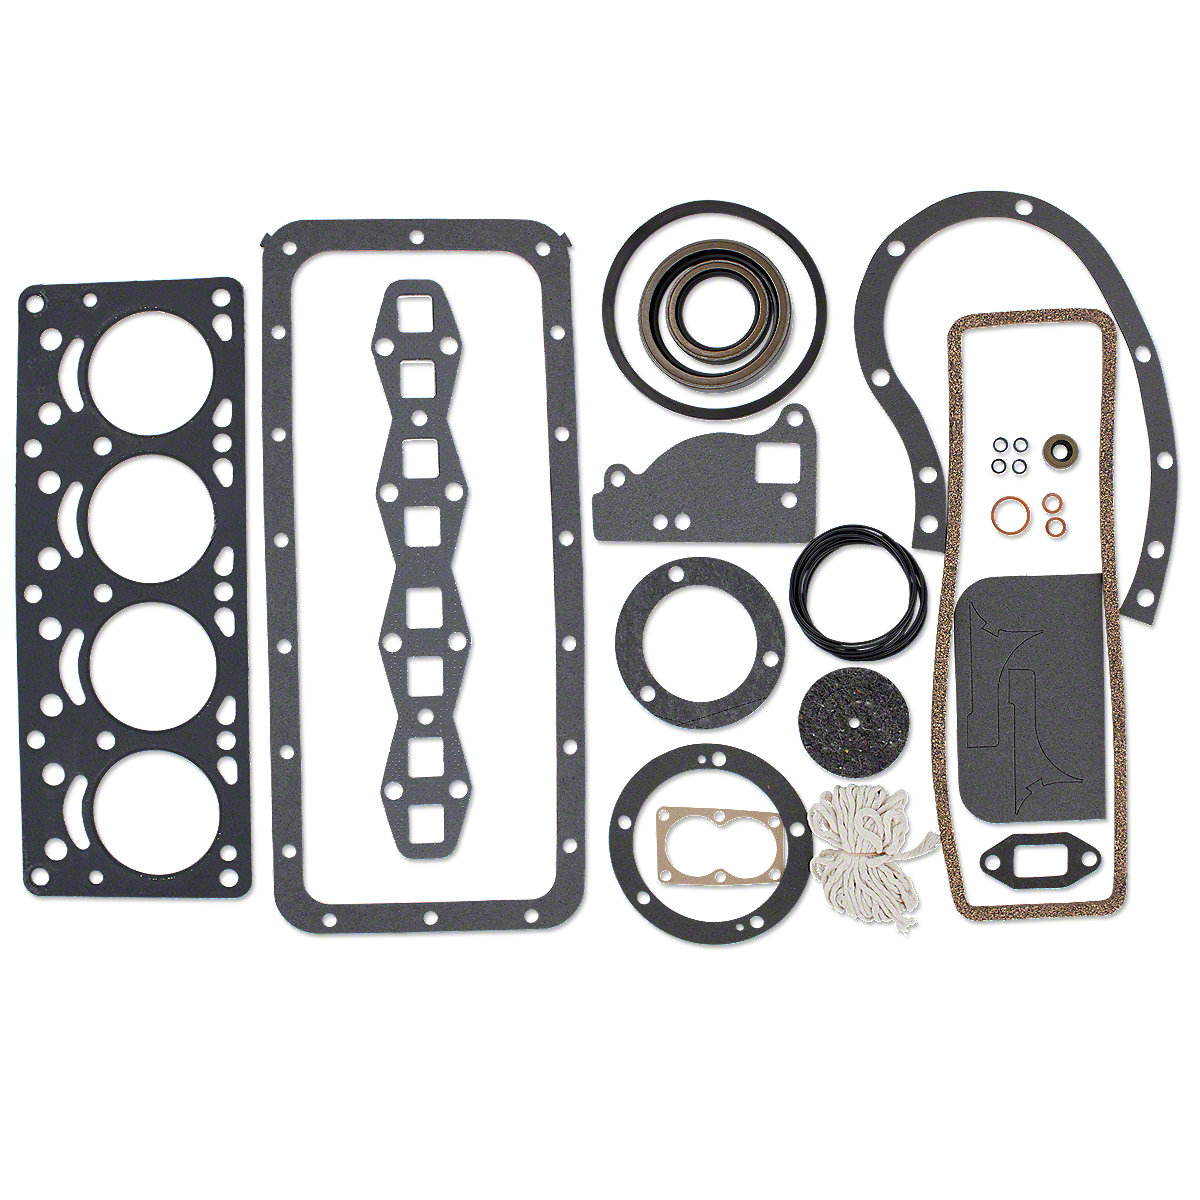 Complete Engine Gasket Set For Massey Ferguson: TE20, TO20, TO30.